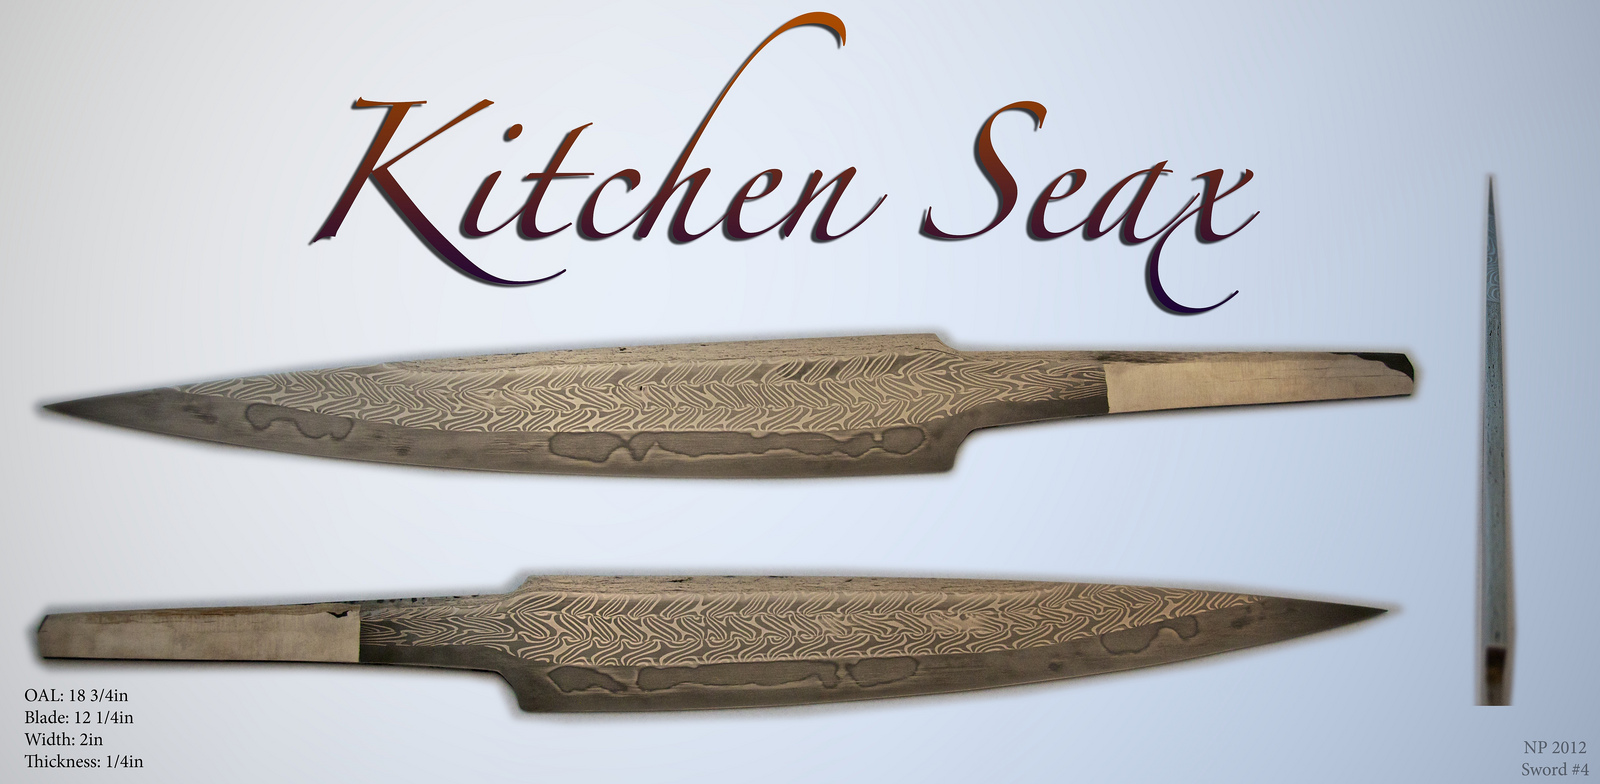 Pattern-Welded Seax